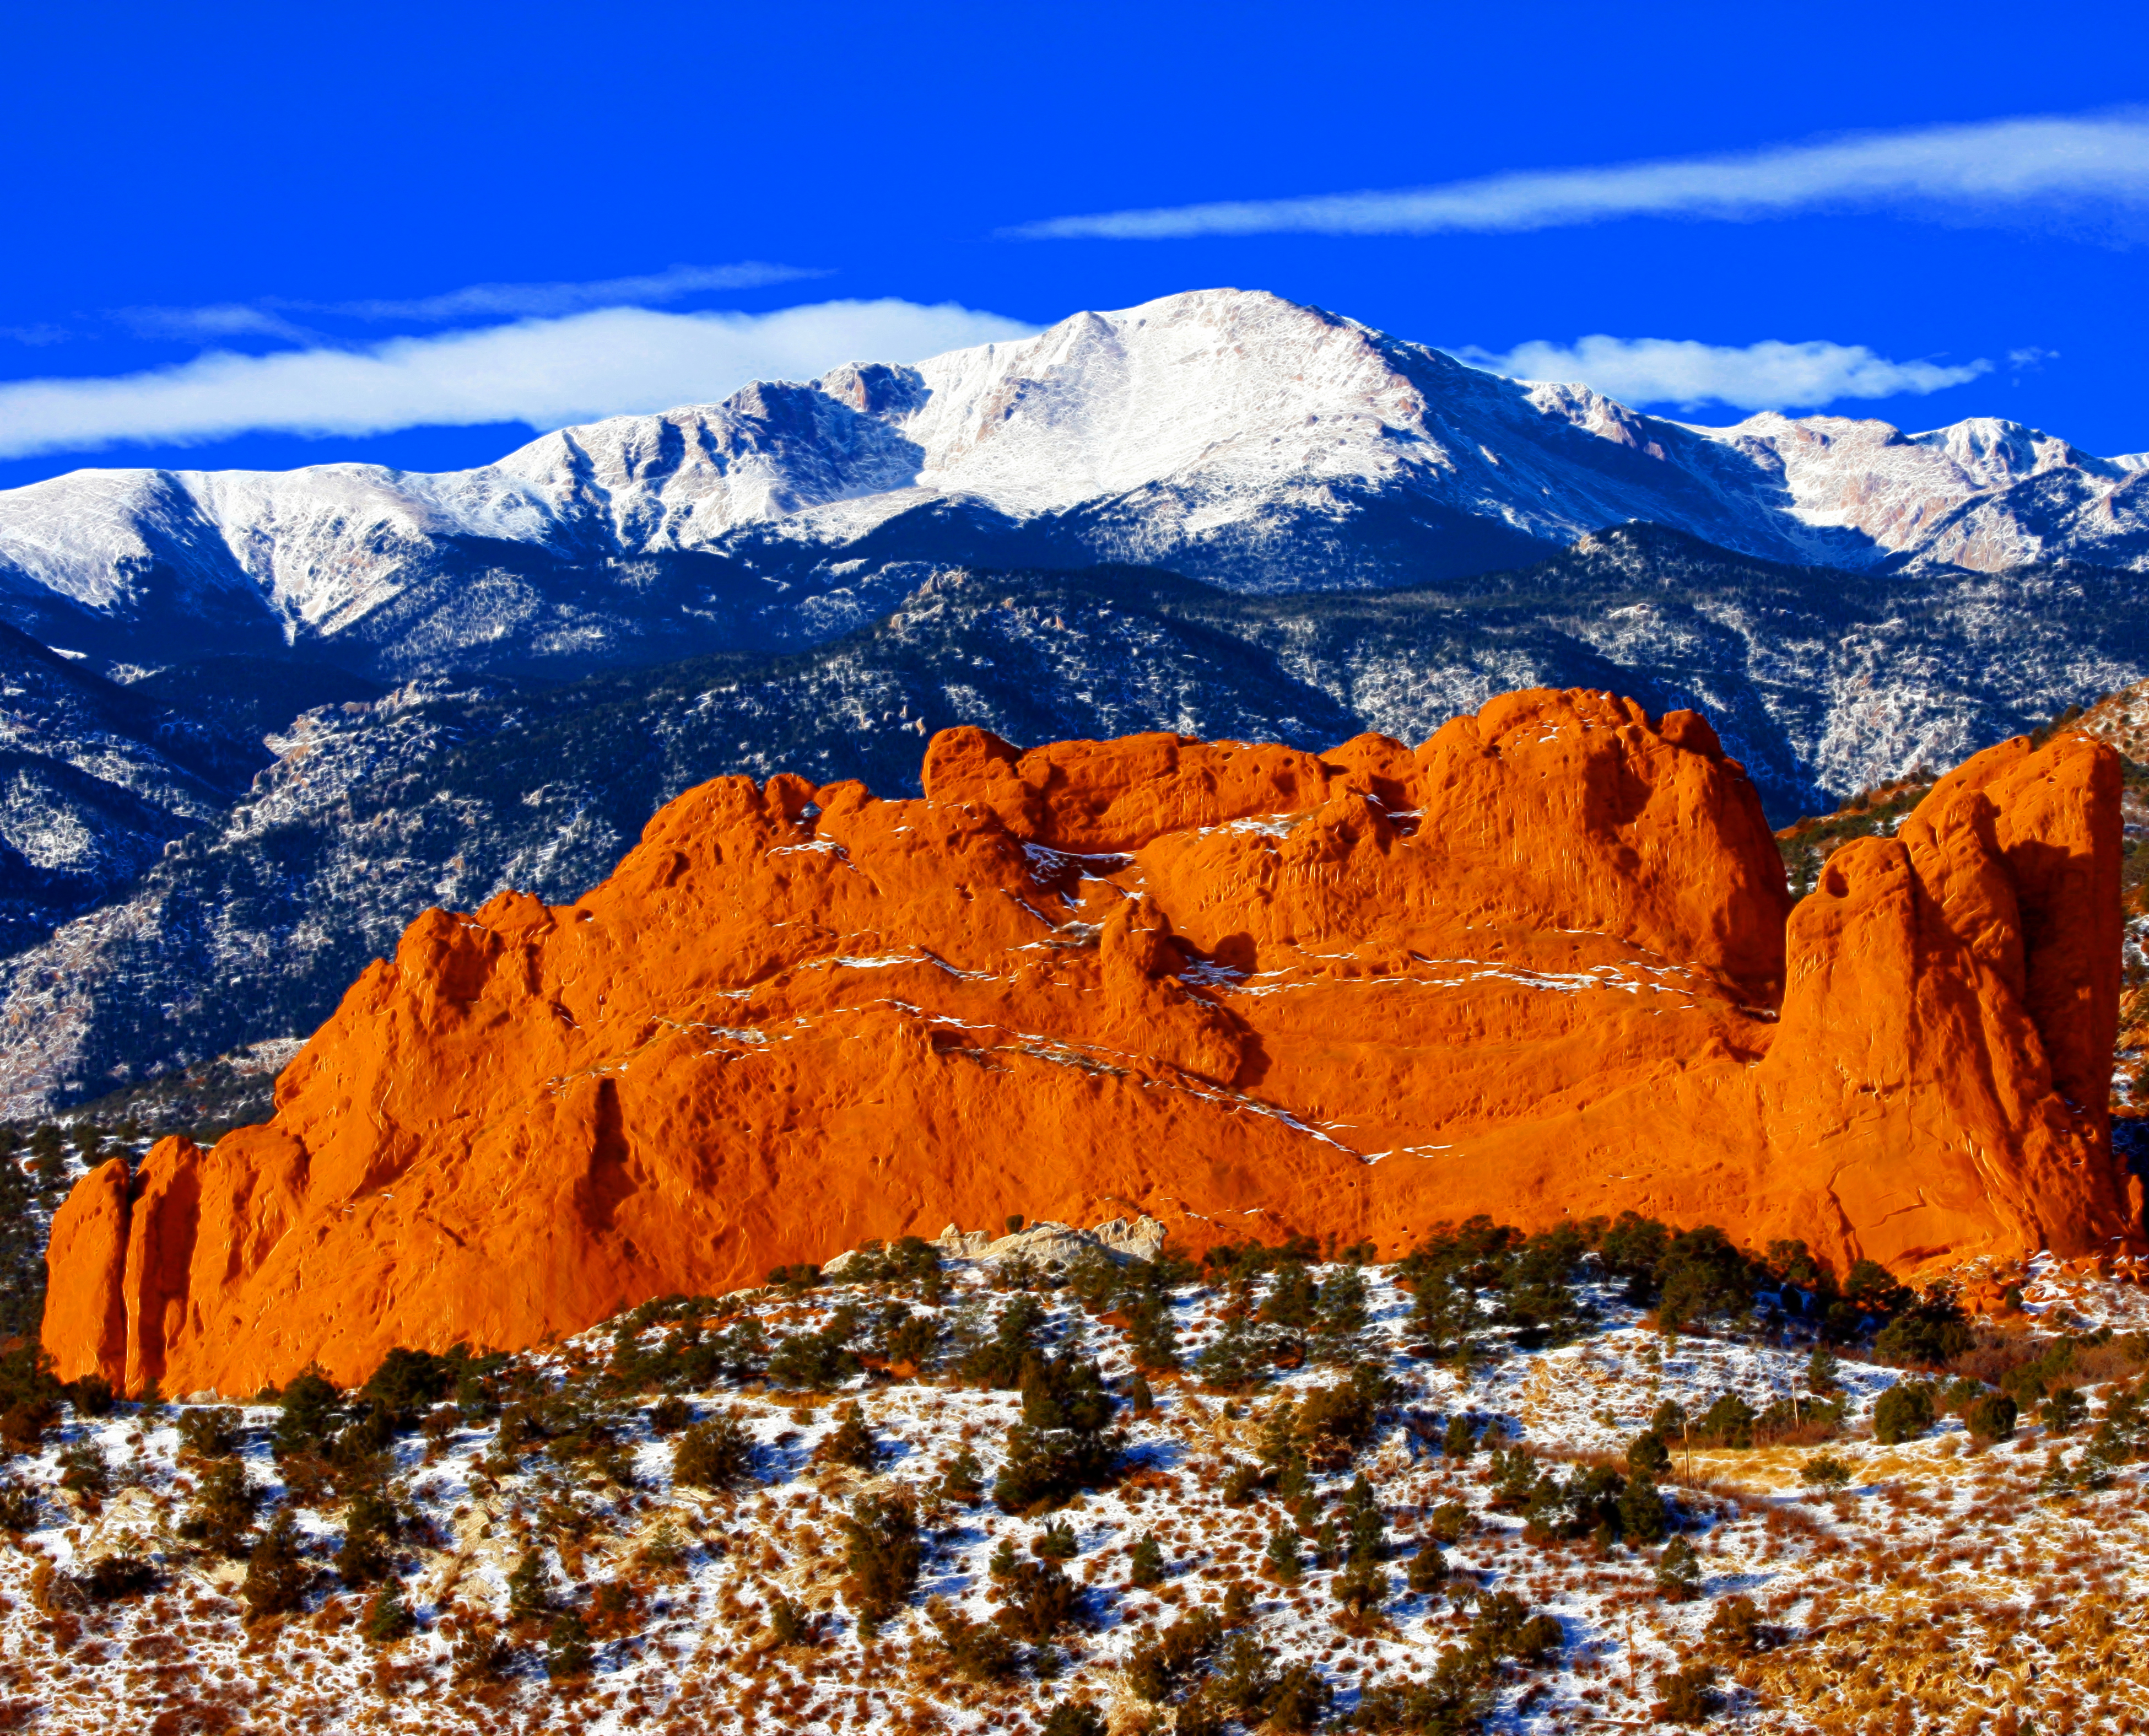 Sweet america pikes peak mounatin from garden of the gods - Garden of the gods colorado springs co ...